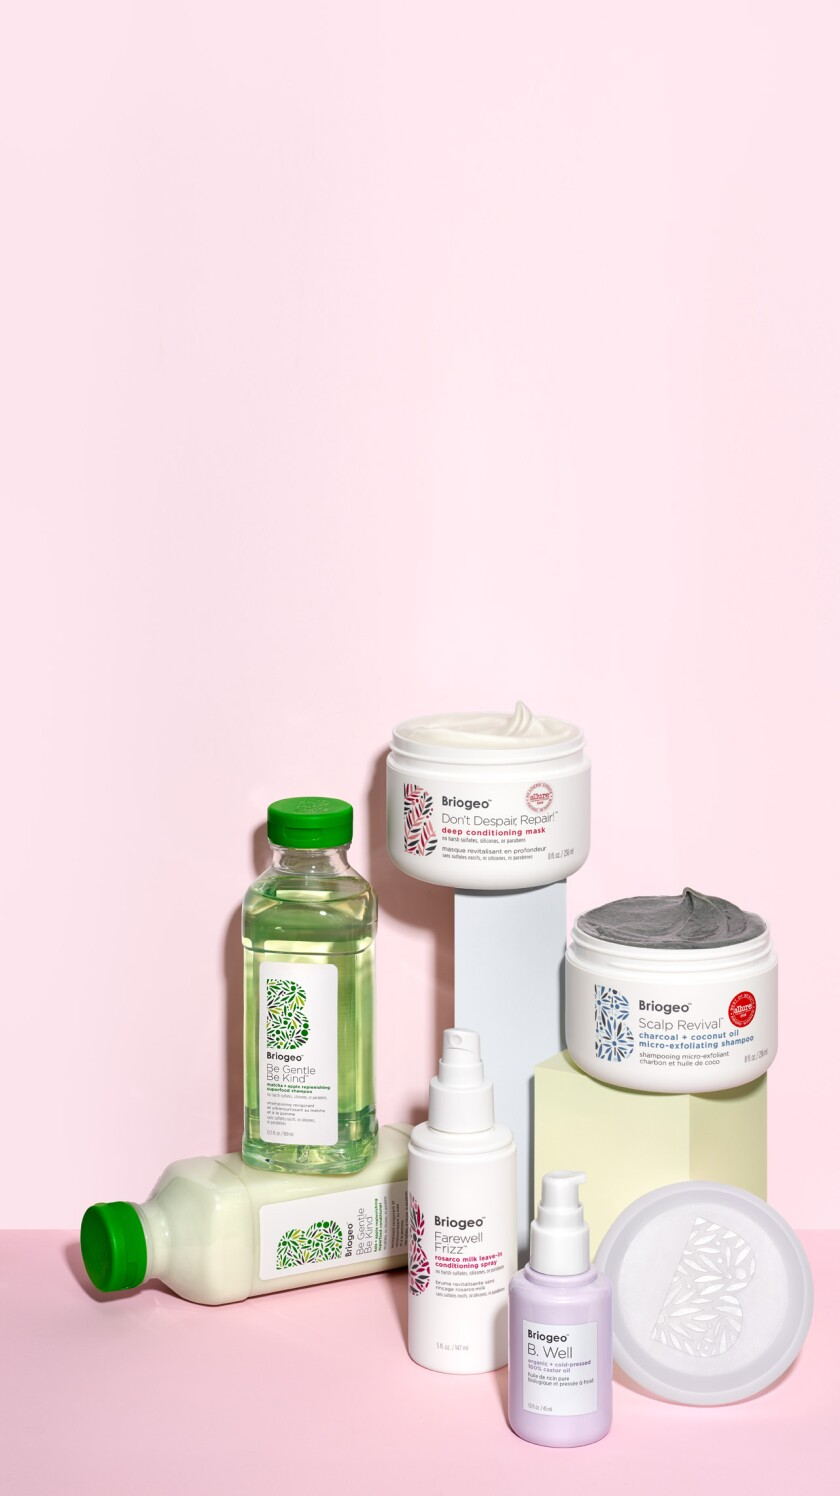 Bestselling products from clean haircare line Briogeo.